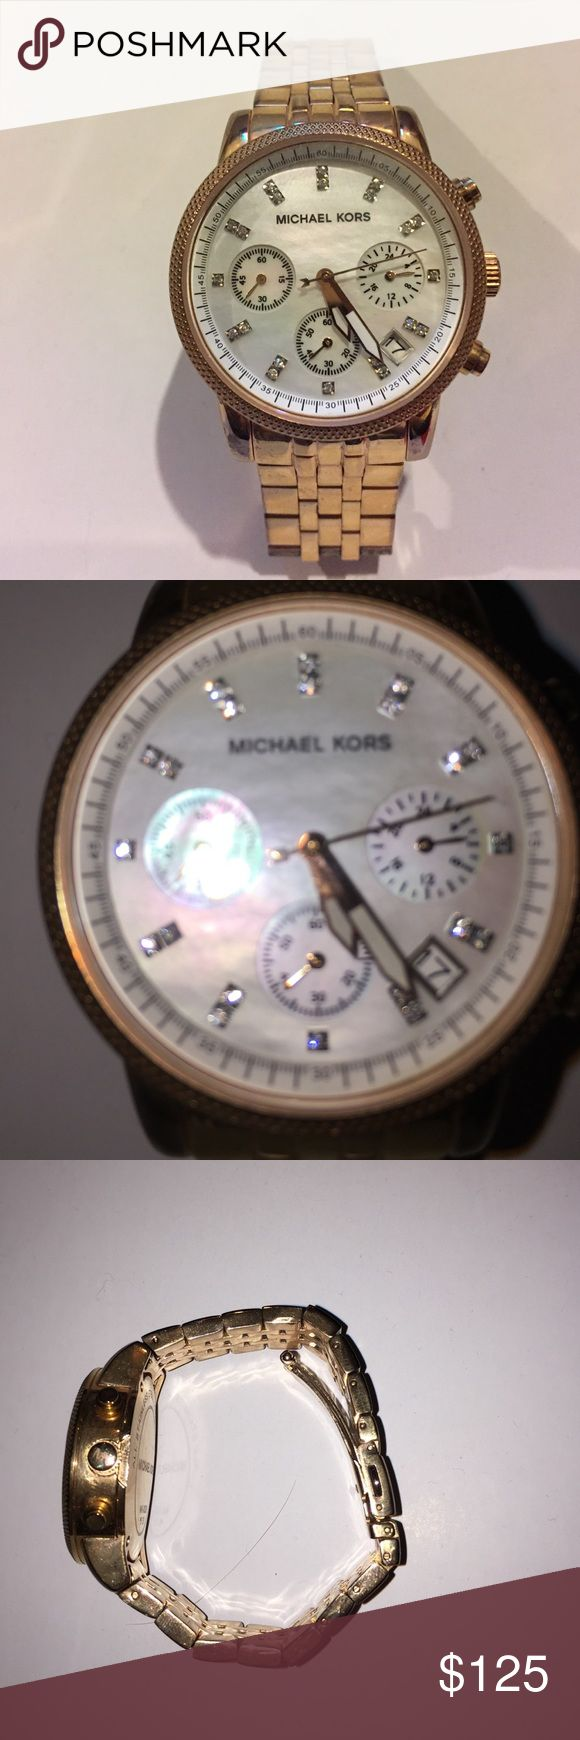 Michael Kors Watch Rose gold Michael Kors watch with white pearl face. Normal wear on bracelet part of watch. The battery is dead which is why the price is so low. I have an Apple Watch and never wear my nice watches anymore. I have the original box, price tag, booklet and additional link. Michael Kors Accessories Watches